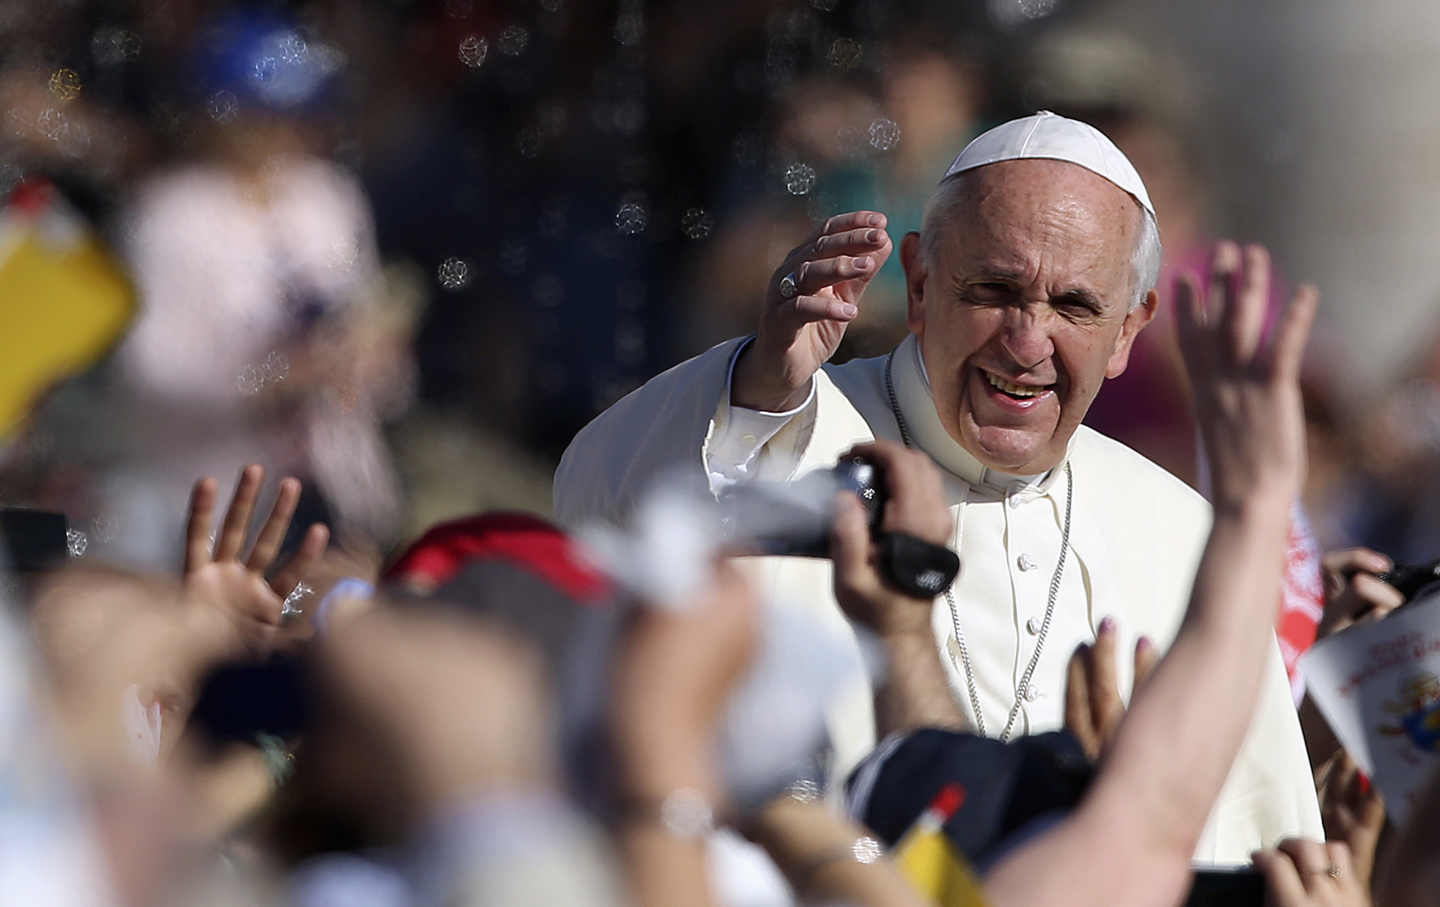 Pope Francis waves as he arrives to lead his Wednesday general audience in Saint Peter's square at the Vatican.